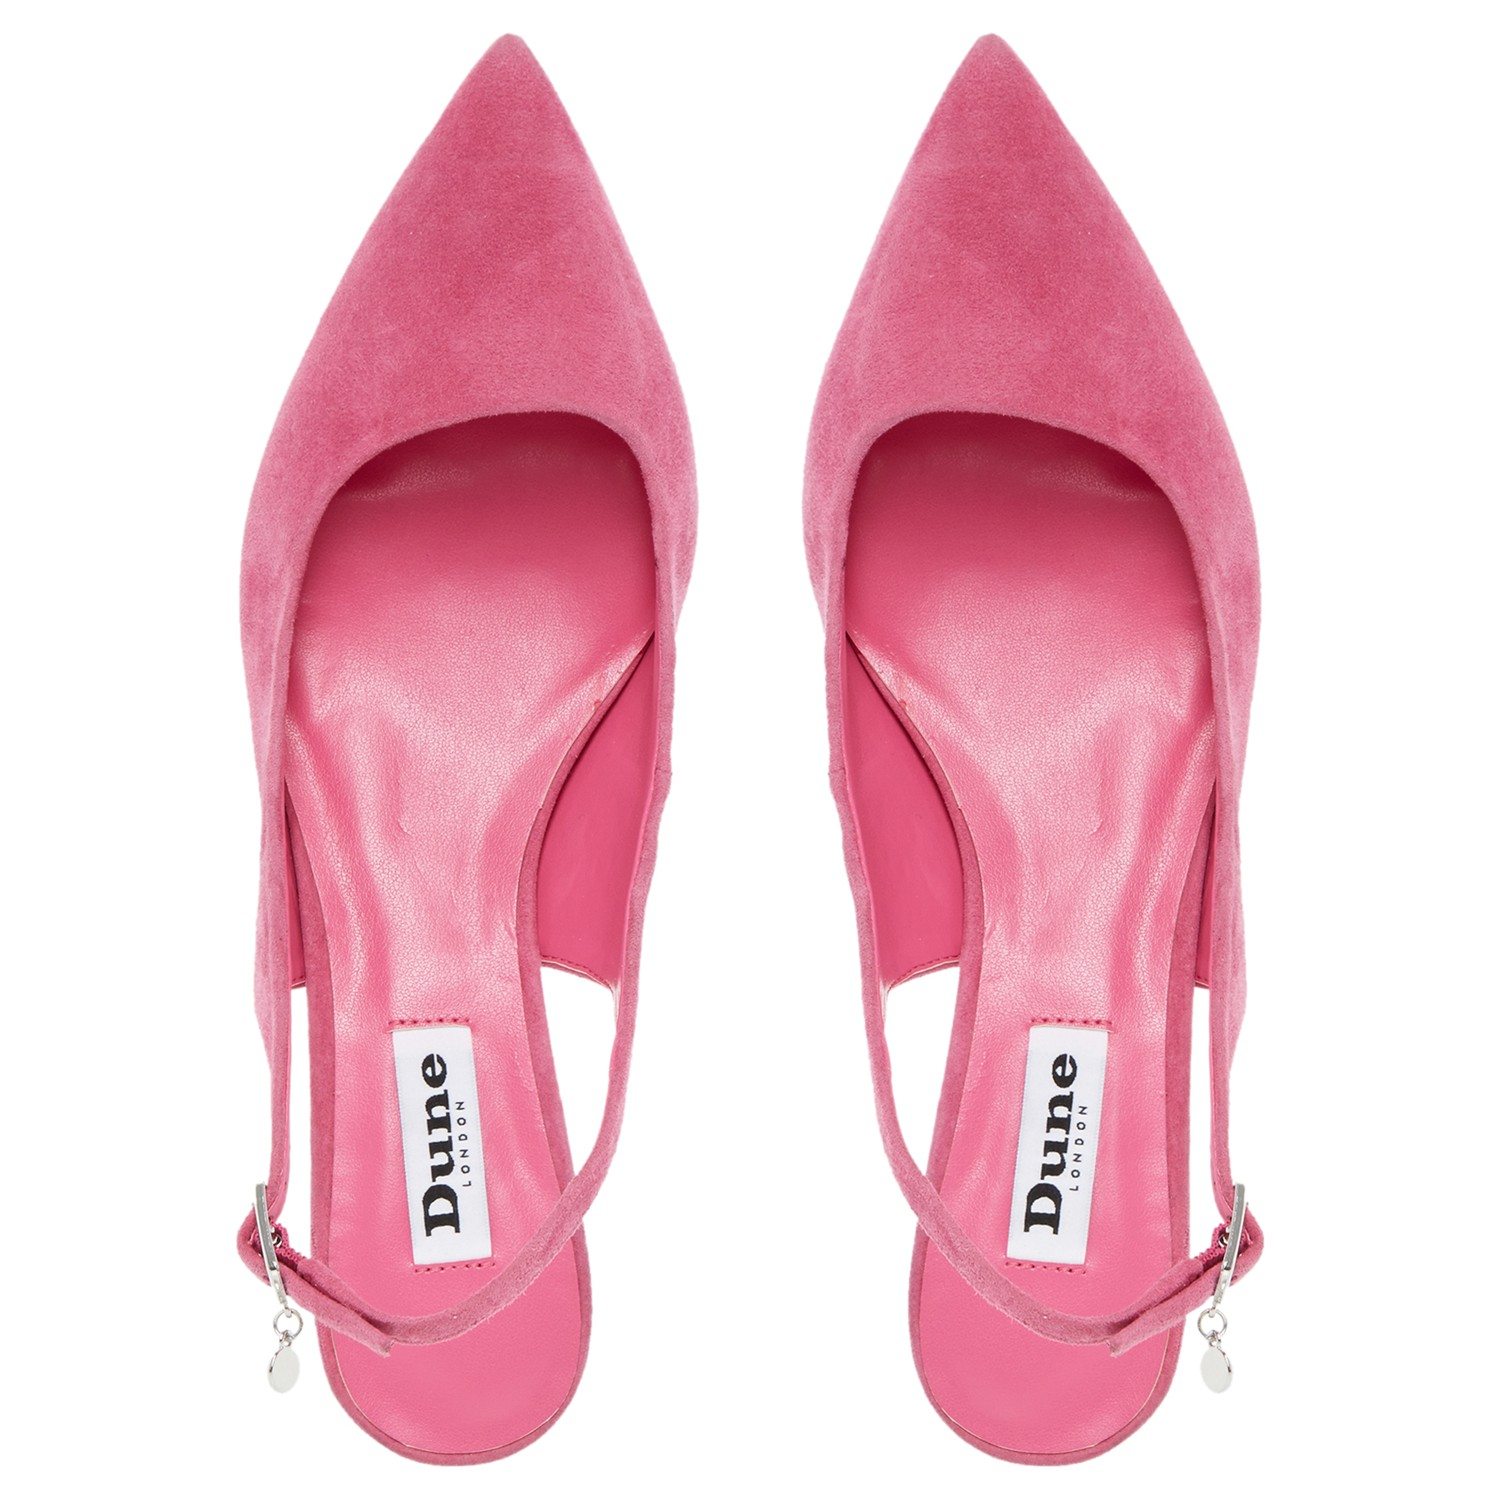 Hot Pink Kitten Heel Shoes - Is Heel